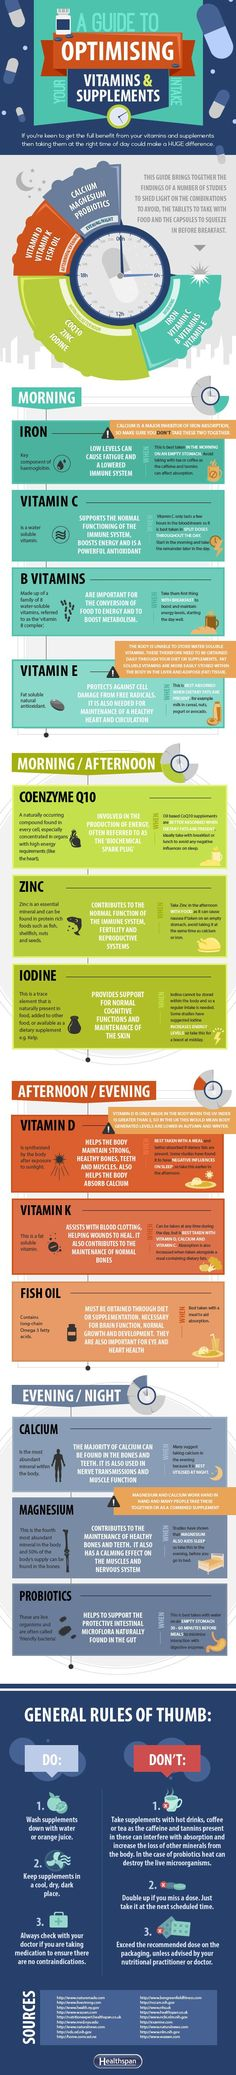 How and when should you take your vitamins? A guide to maximising your vitamin and supplement intake.